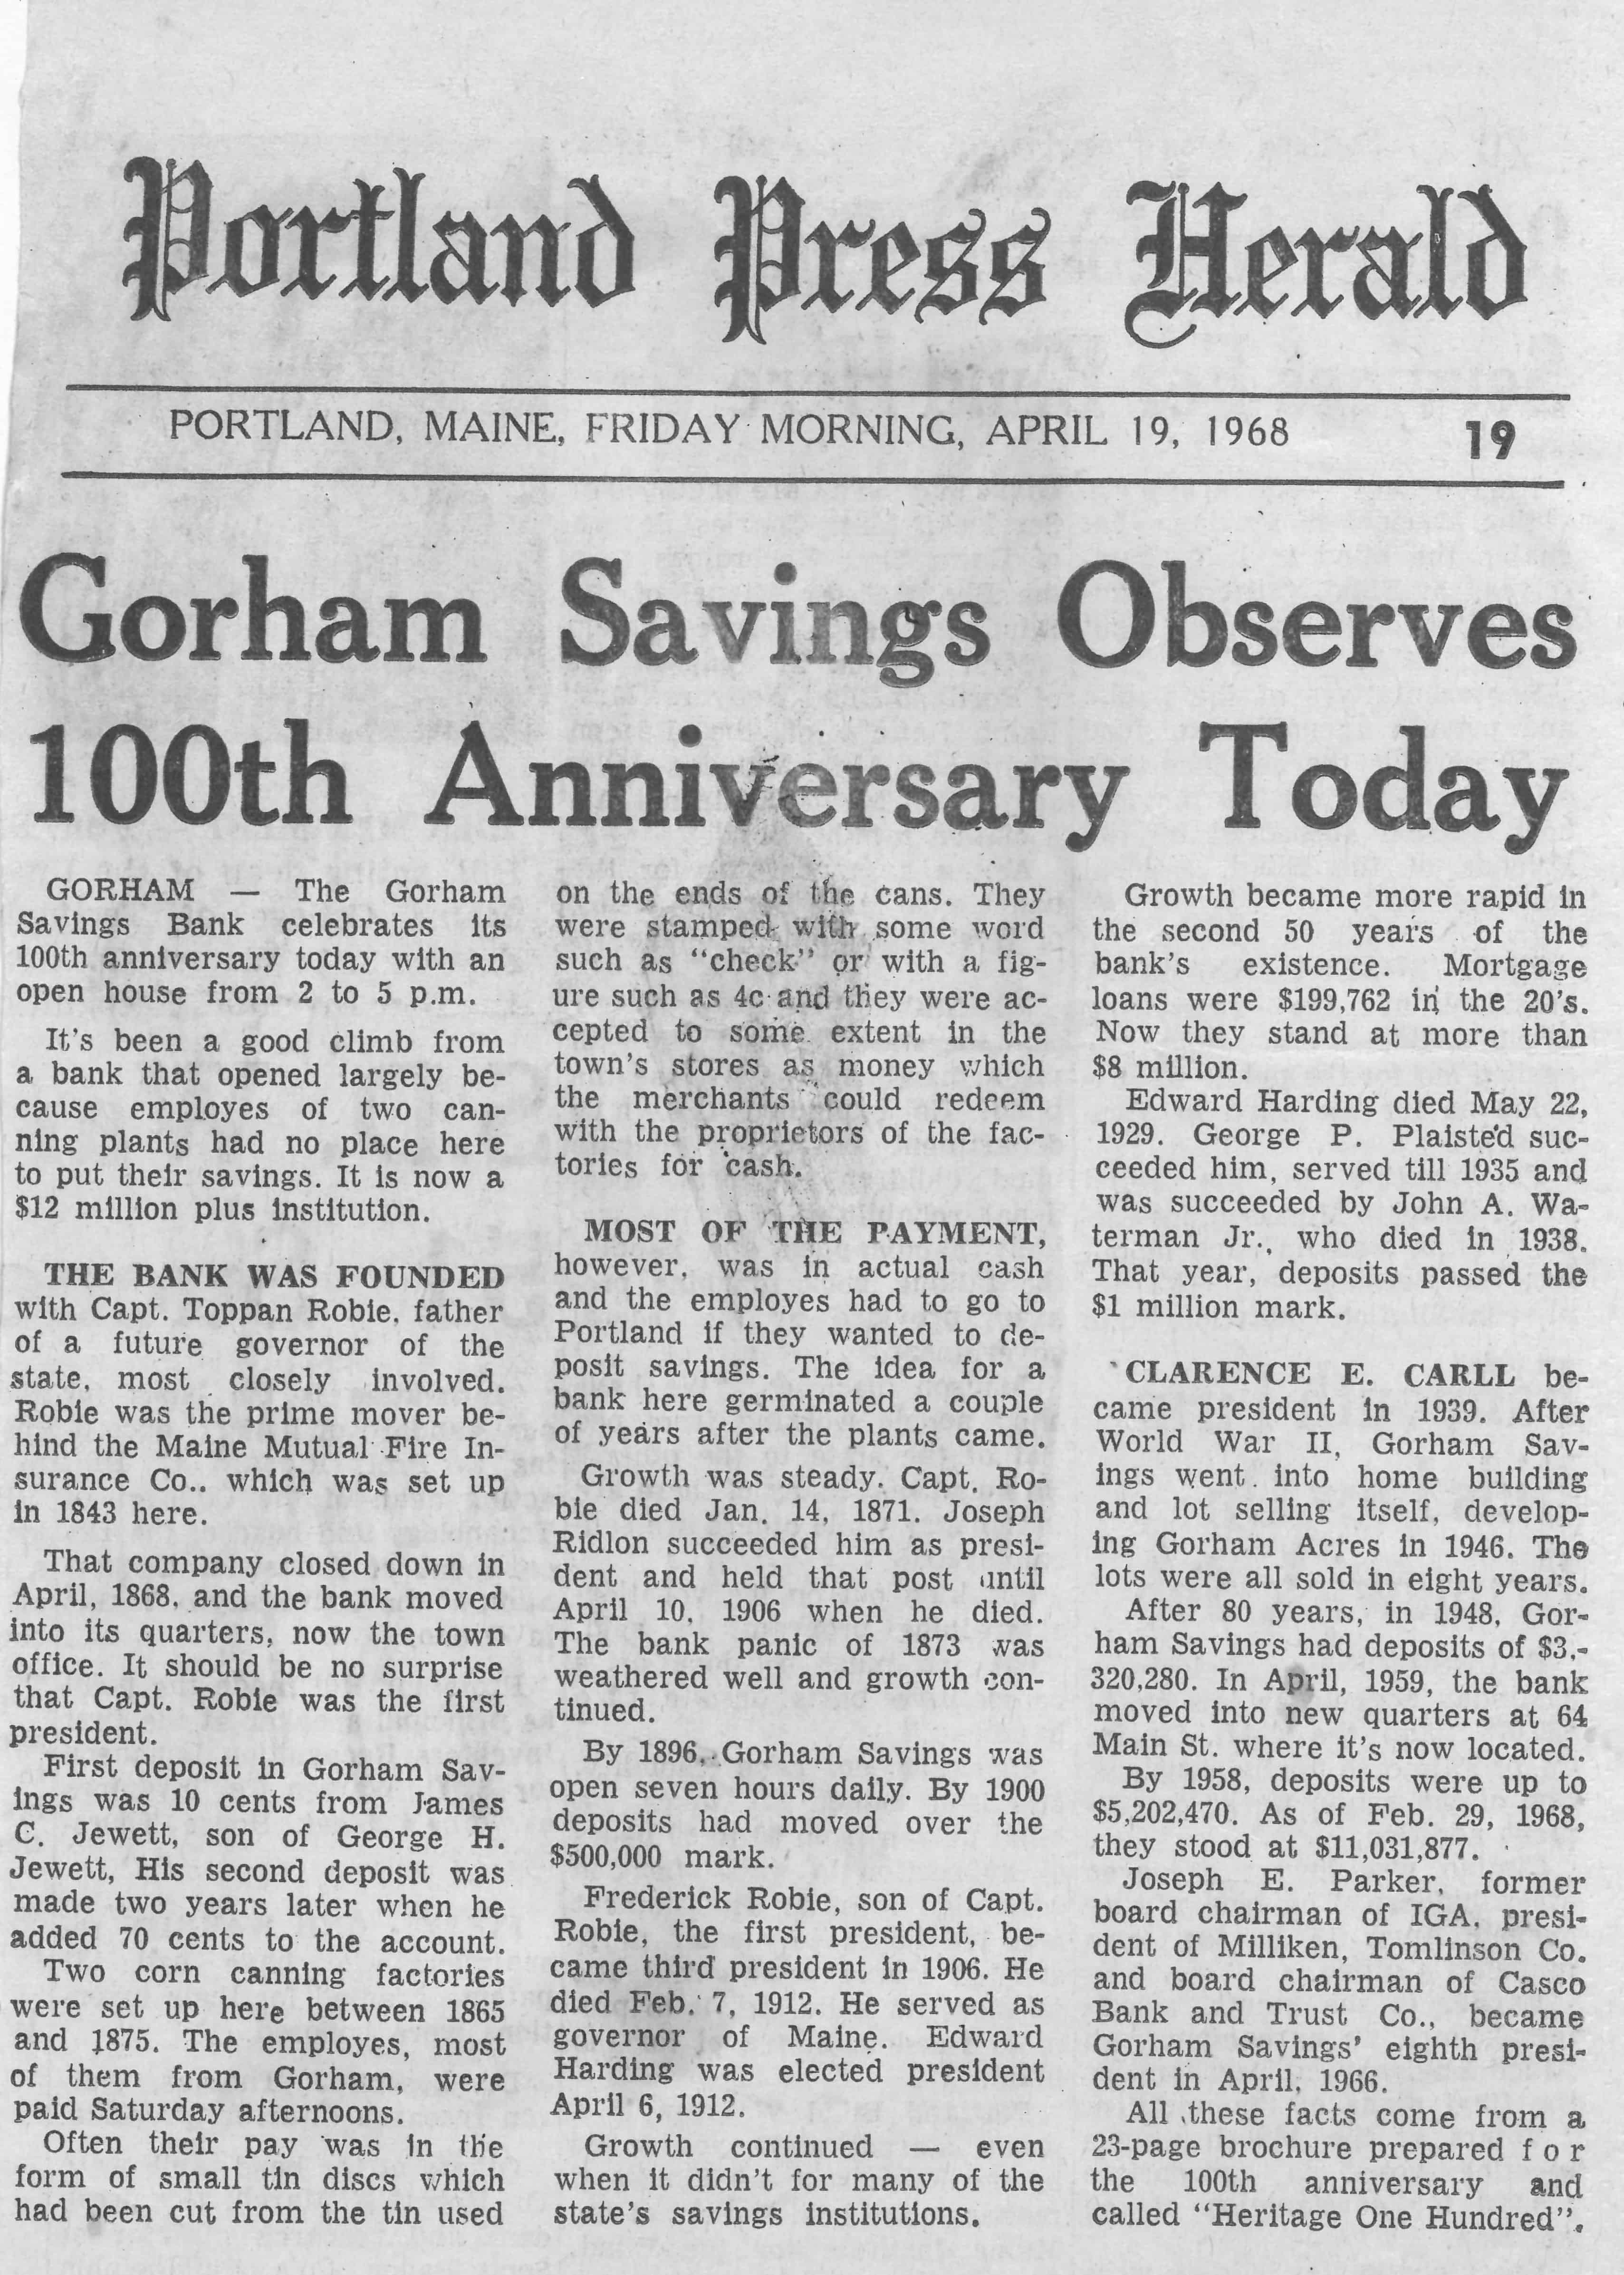 Gorham Savings Bank Celebrates 100 year anniversary